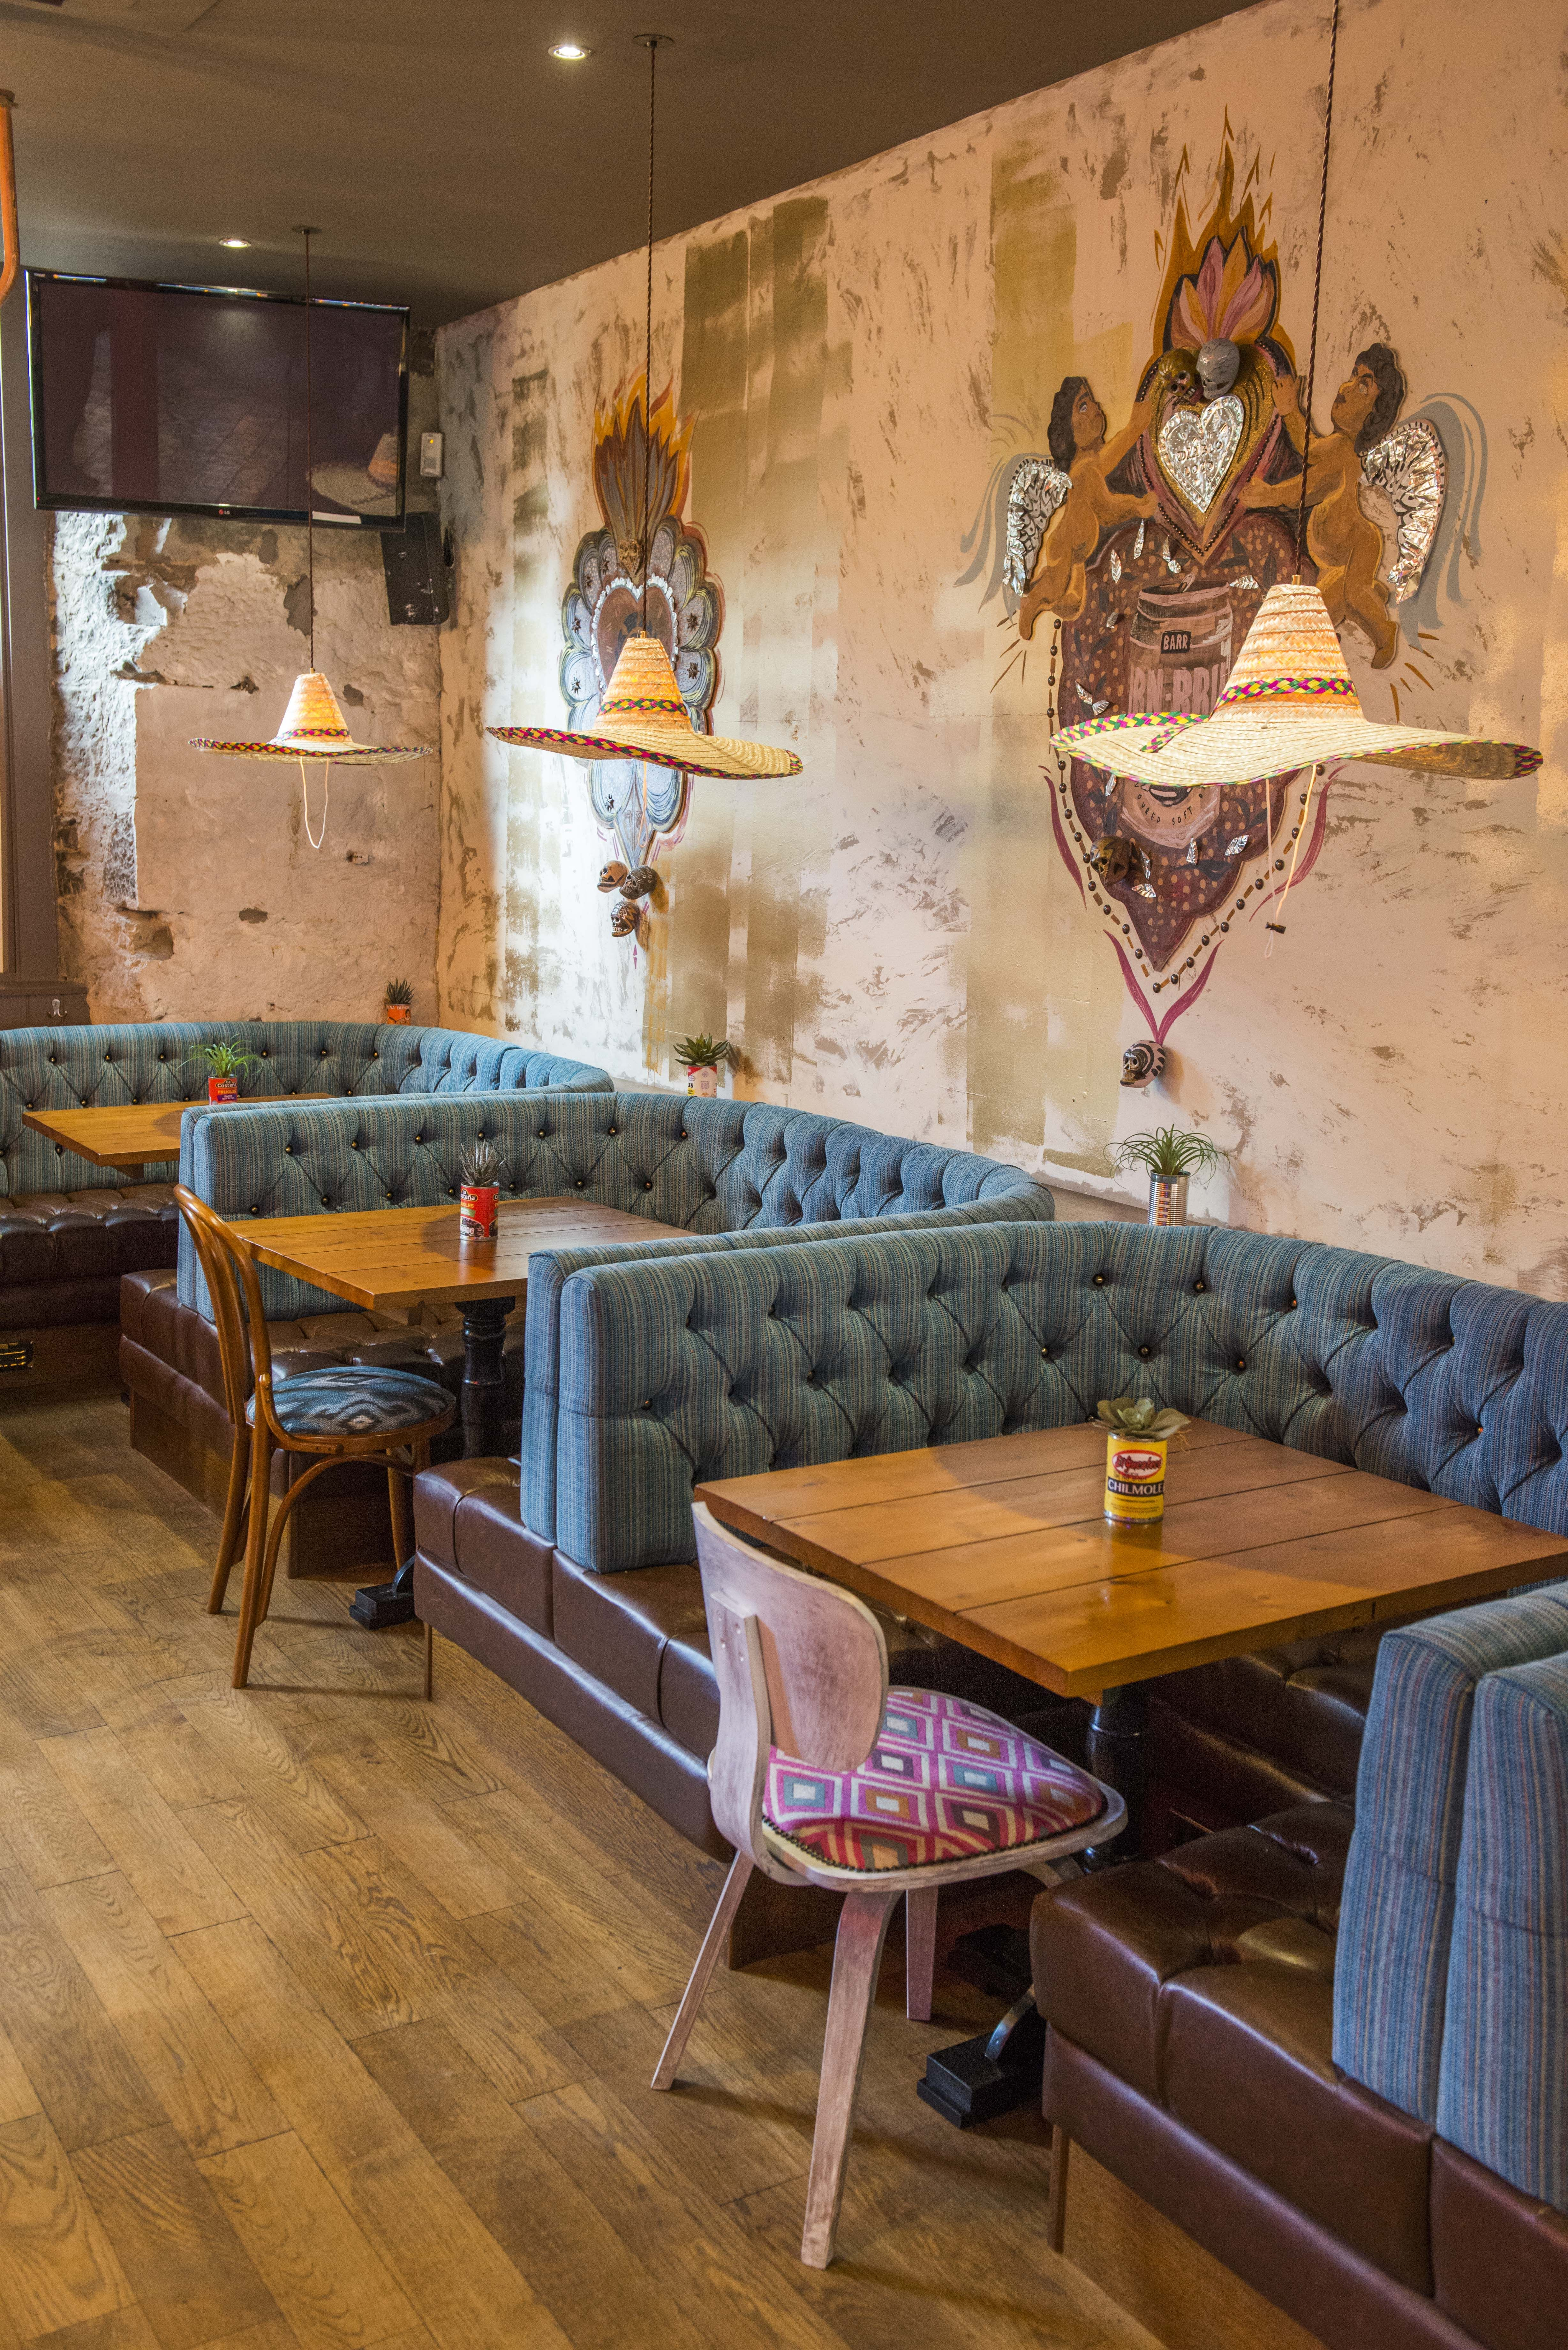 Diablo Loco  Edinburgh is part of Pub interior - Tequila infused party den  Vibrant and colourful interior design full of Mexican mischievousness